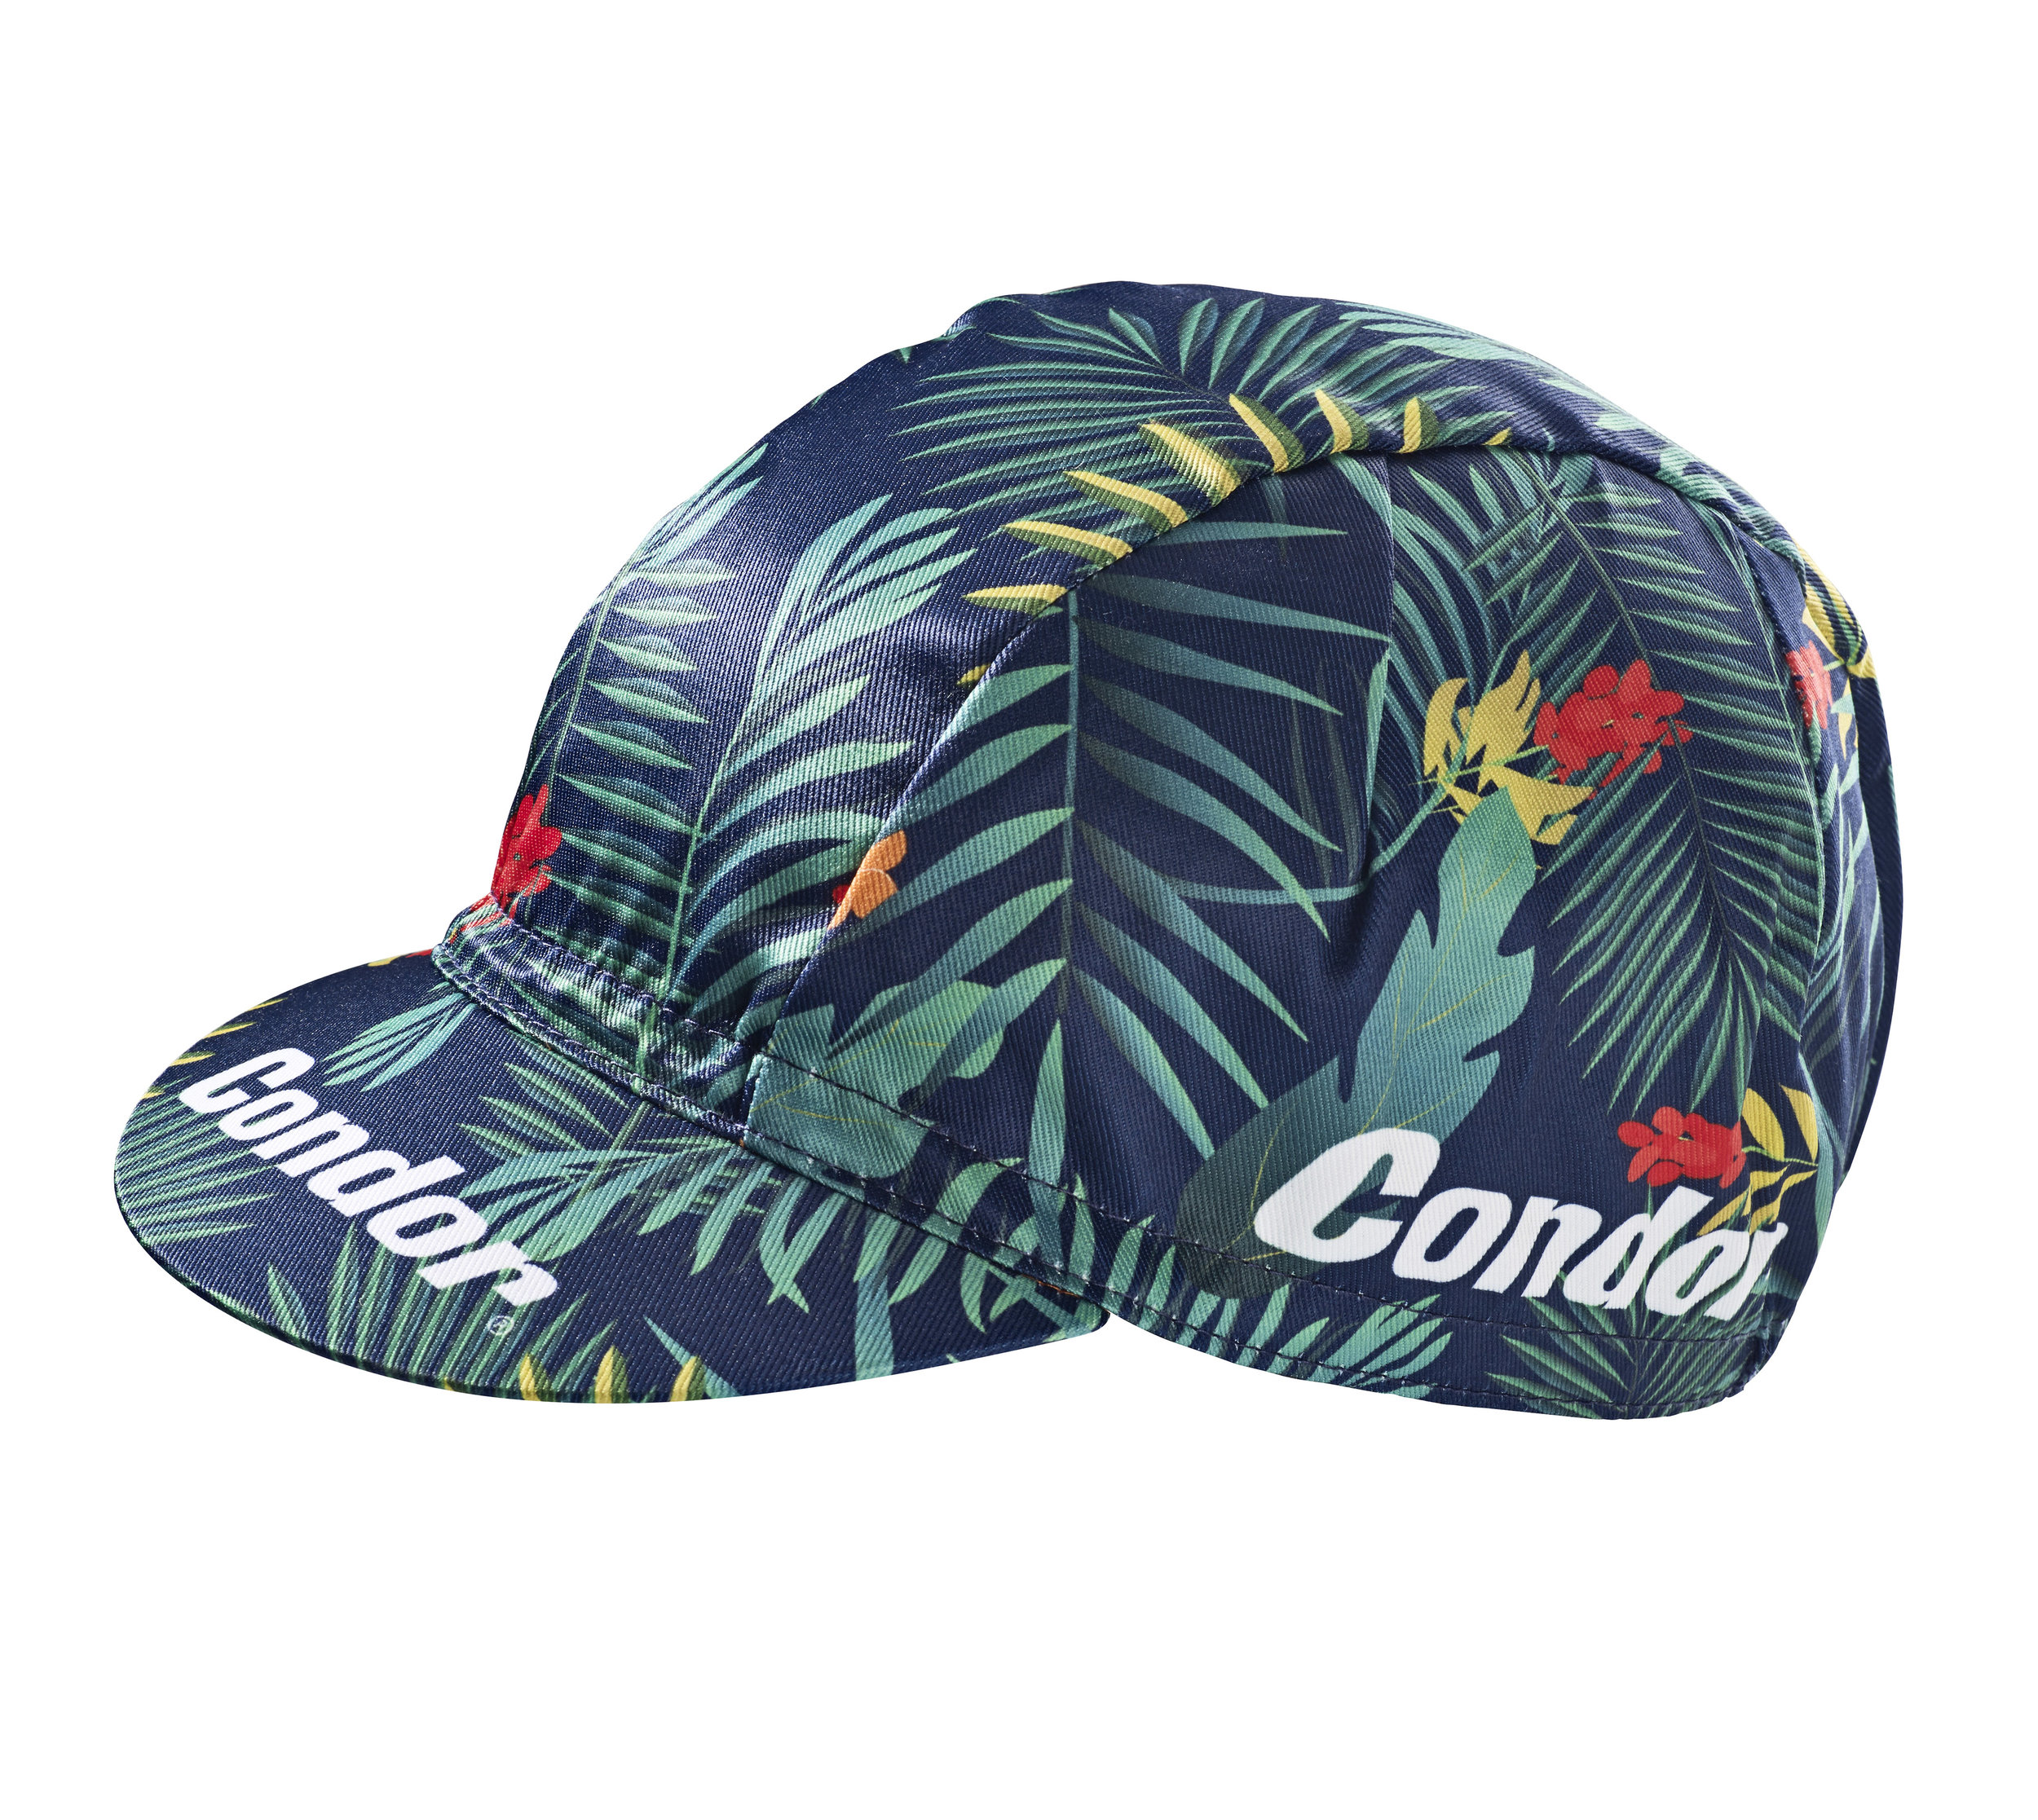 CONDOR 2017 Tropical Cap Peak DOWN 57342.jpg